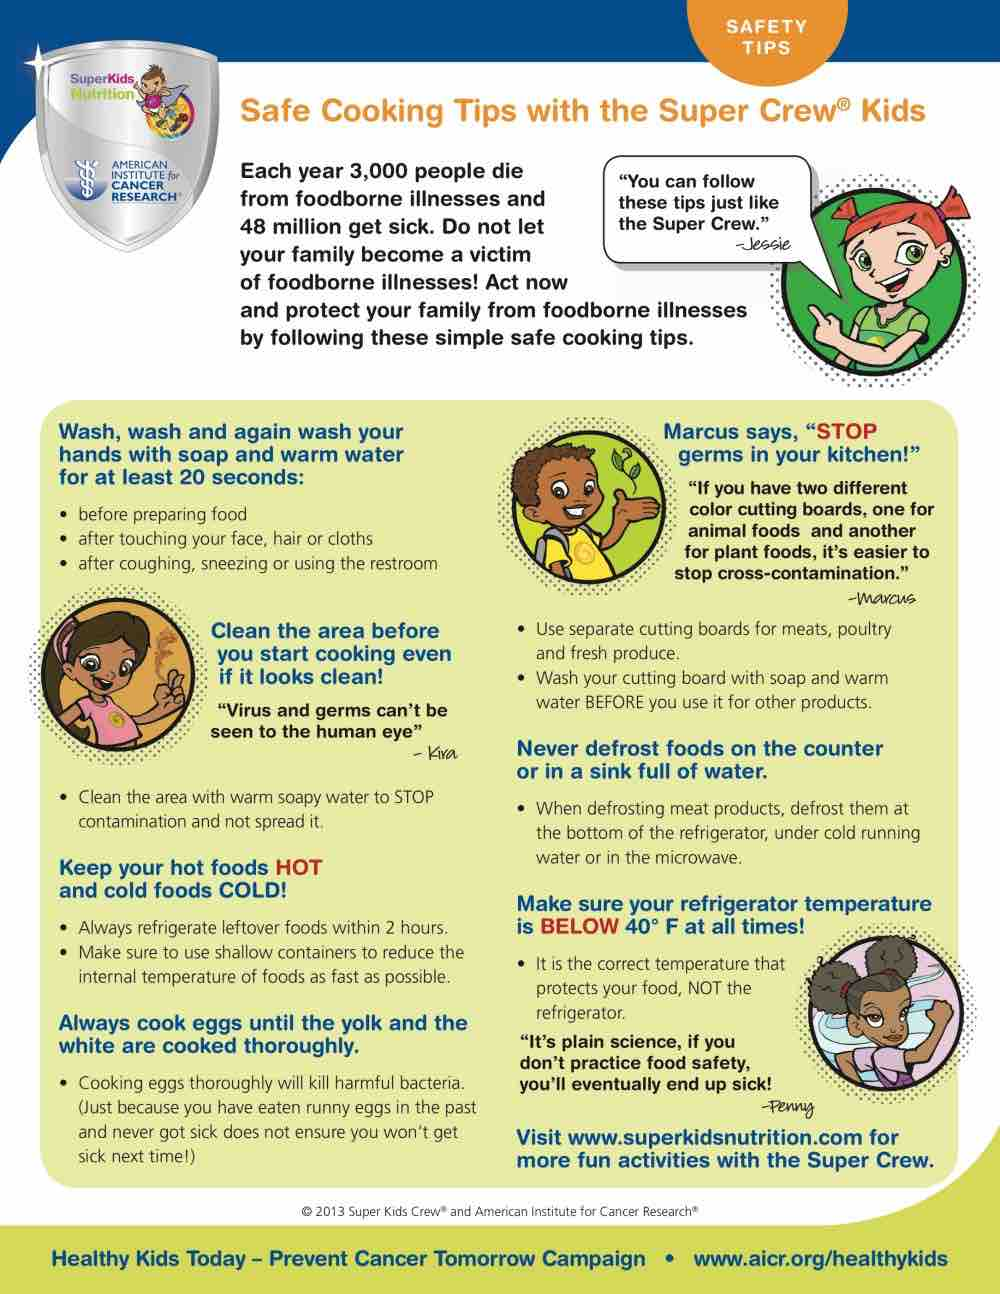 Food safety tips for cooking with the kids and the Super Crew